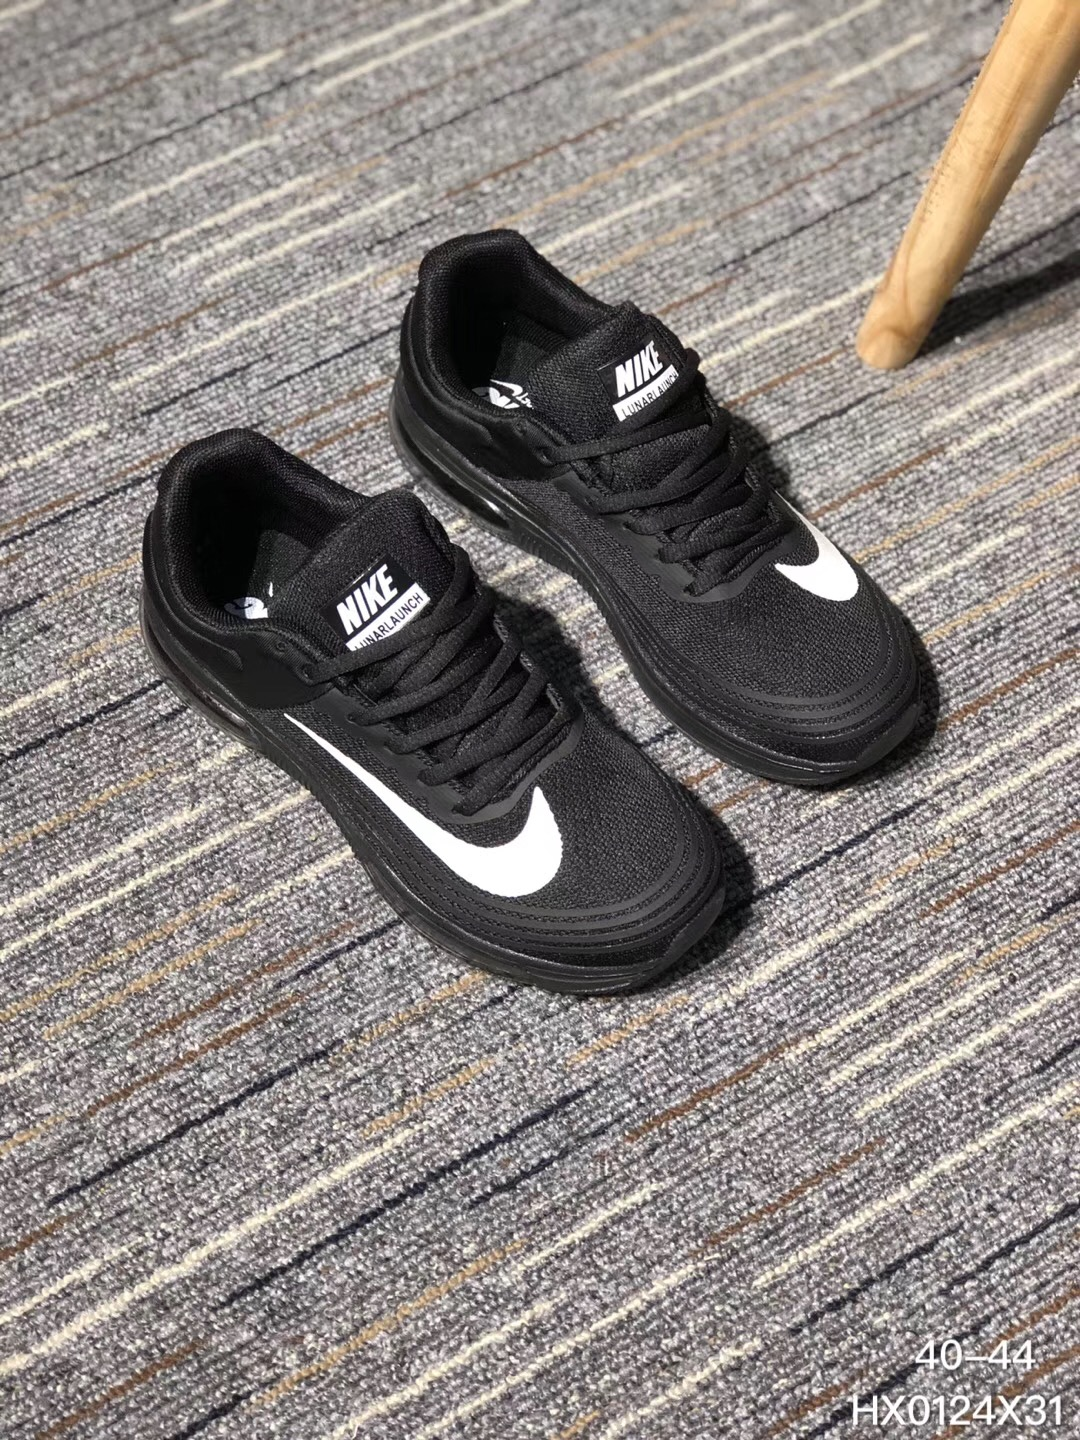 Nike Air Max 2018 Flyknit Black White Running Shoes